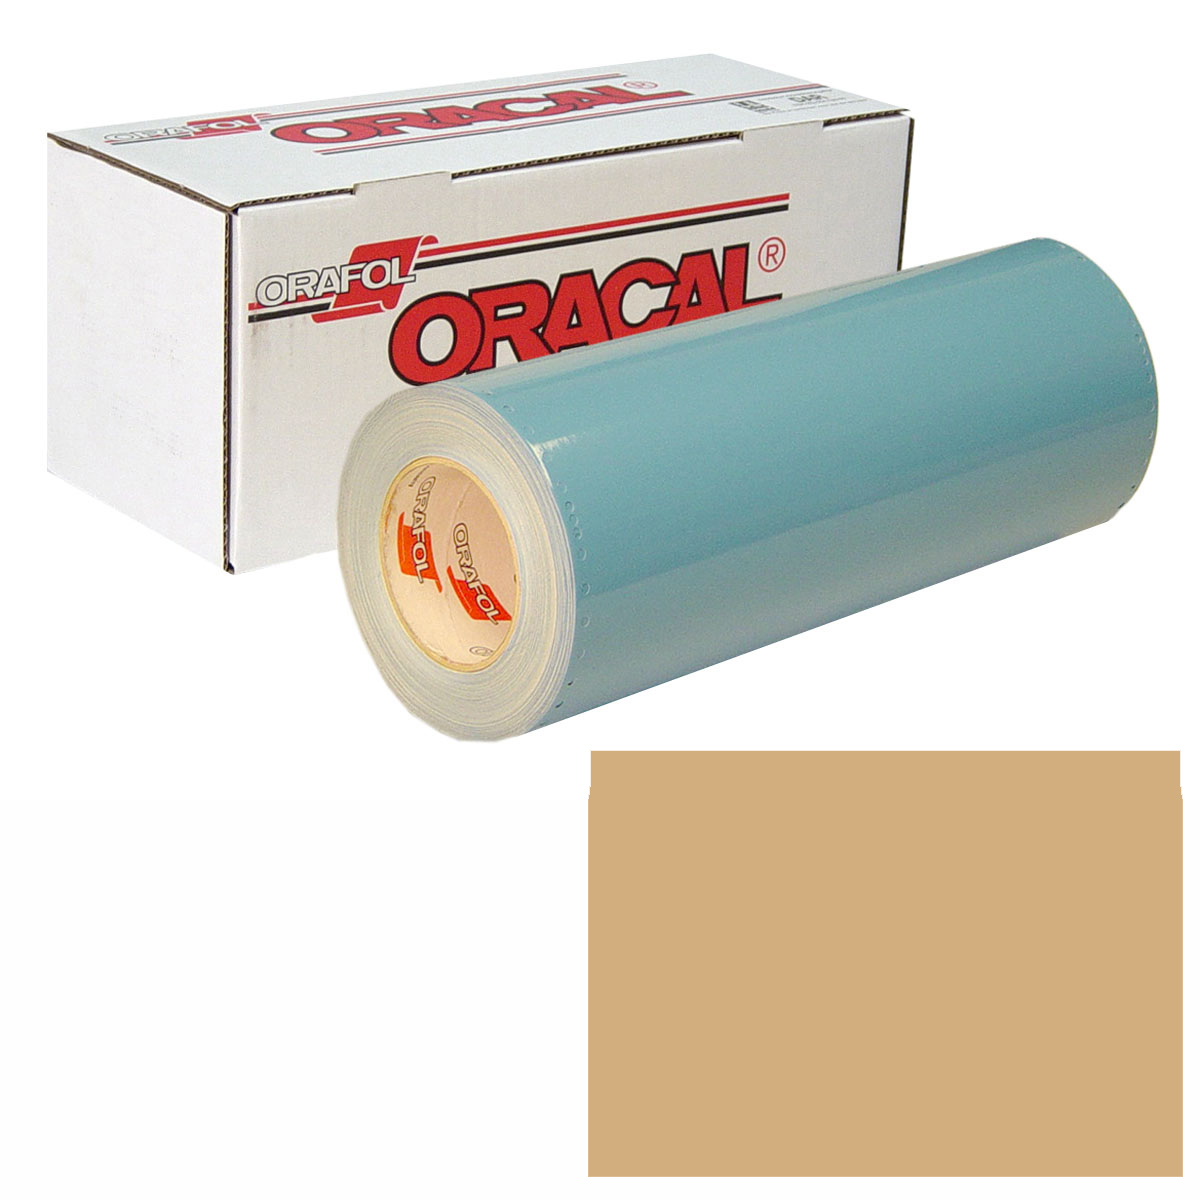 ORACAL 751 30In X 50Yd 081 Light Brown